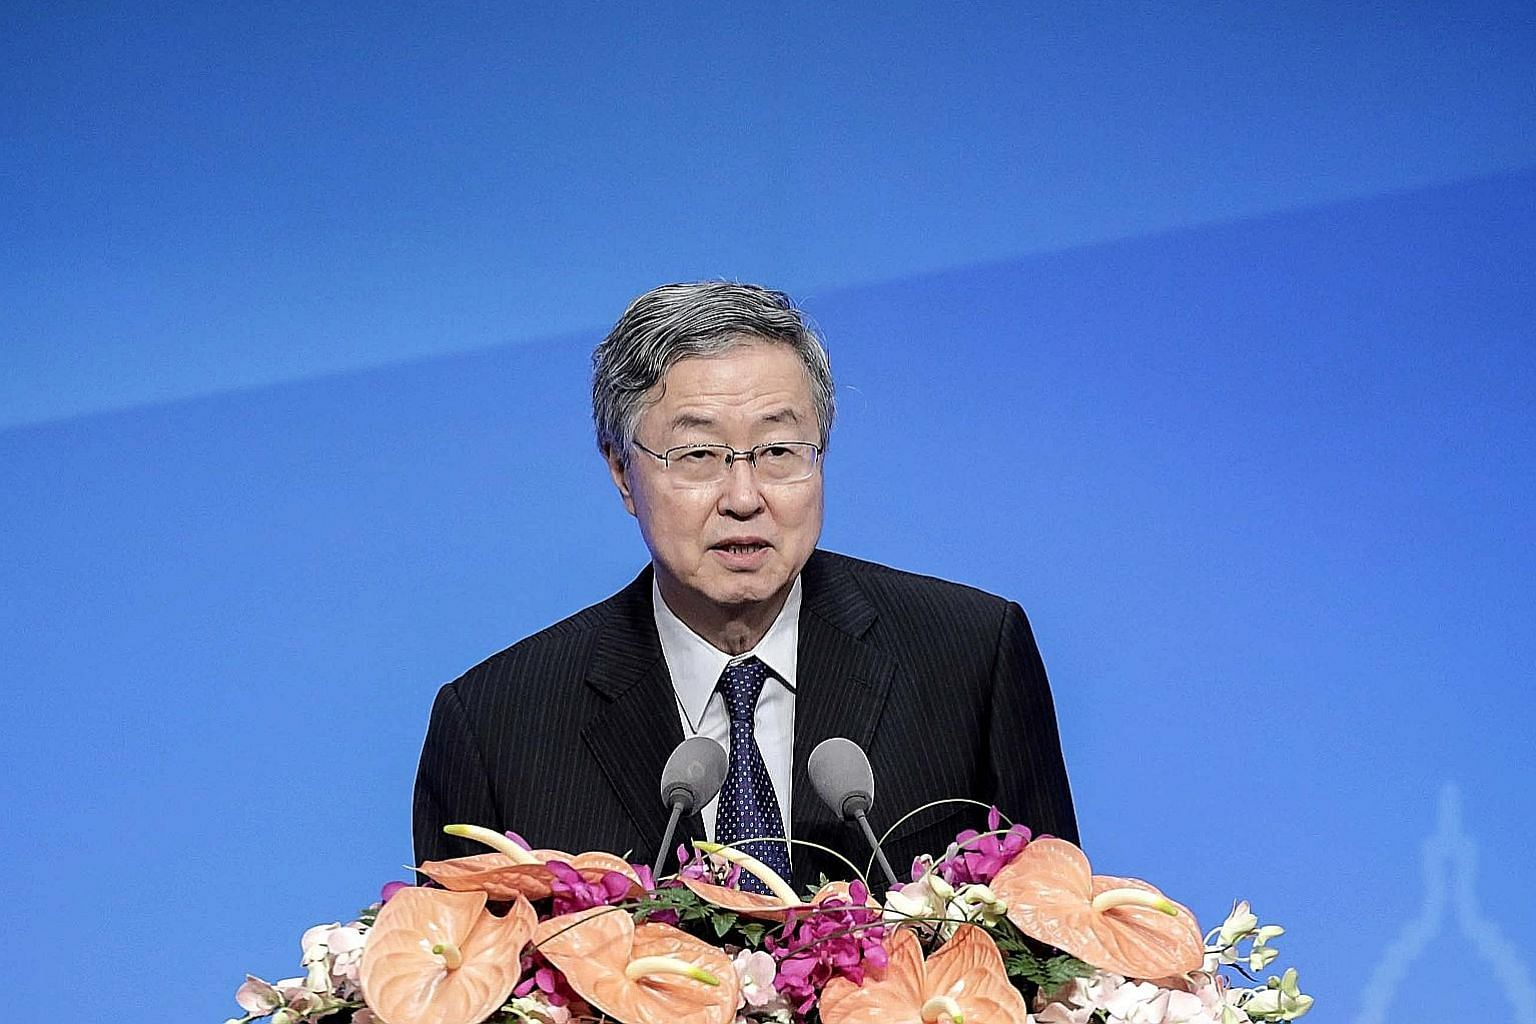 People's Bank of China governor Zhou Xiaochuan said the cost of reform would be higher if the opportunity now is missed.